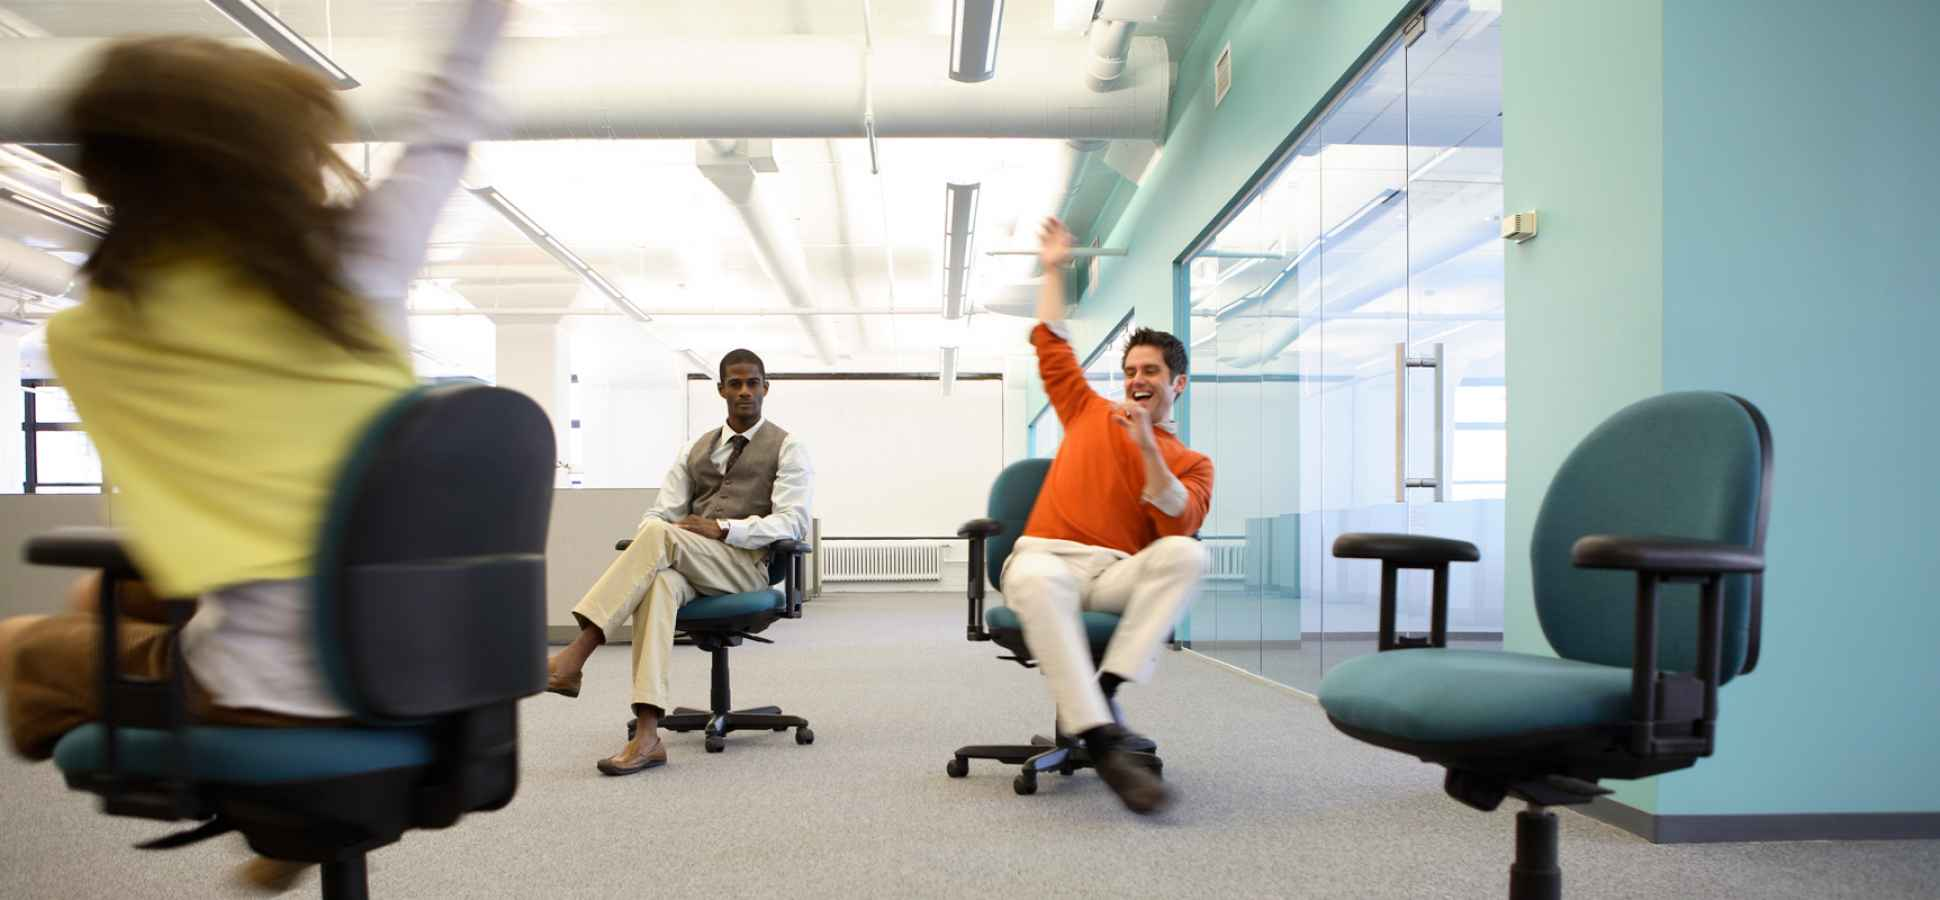 Make Your Office a Fun Place to Work